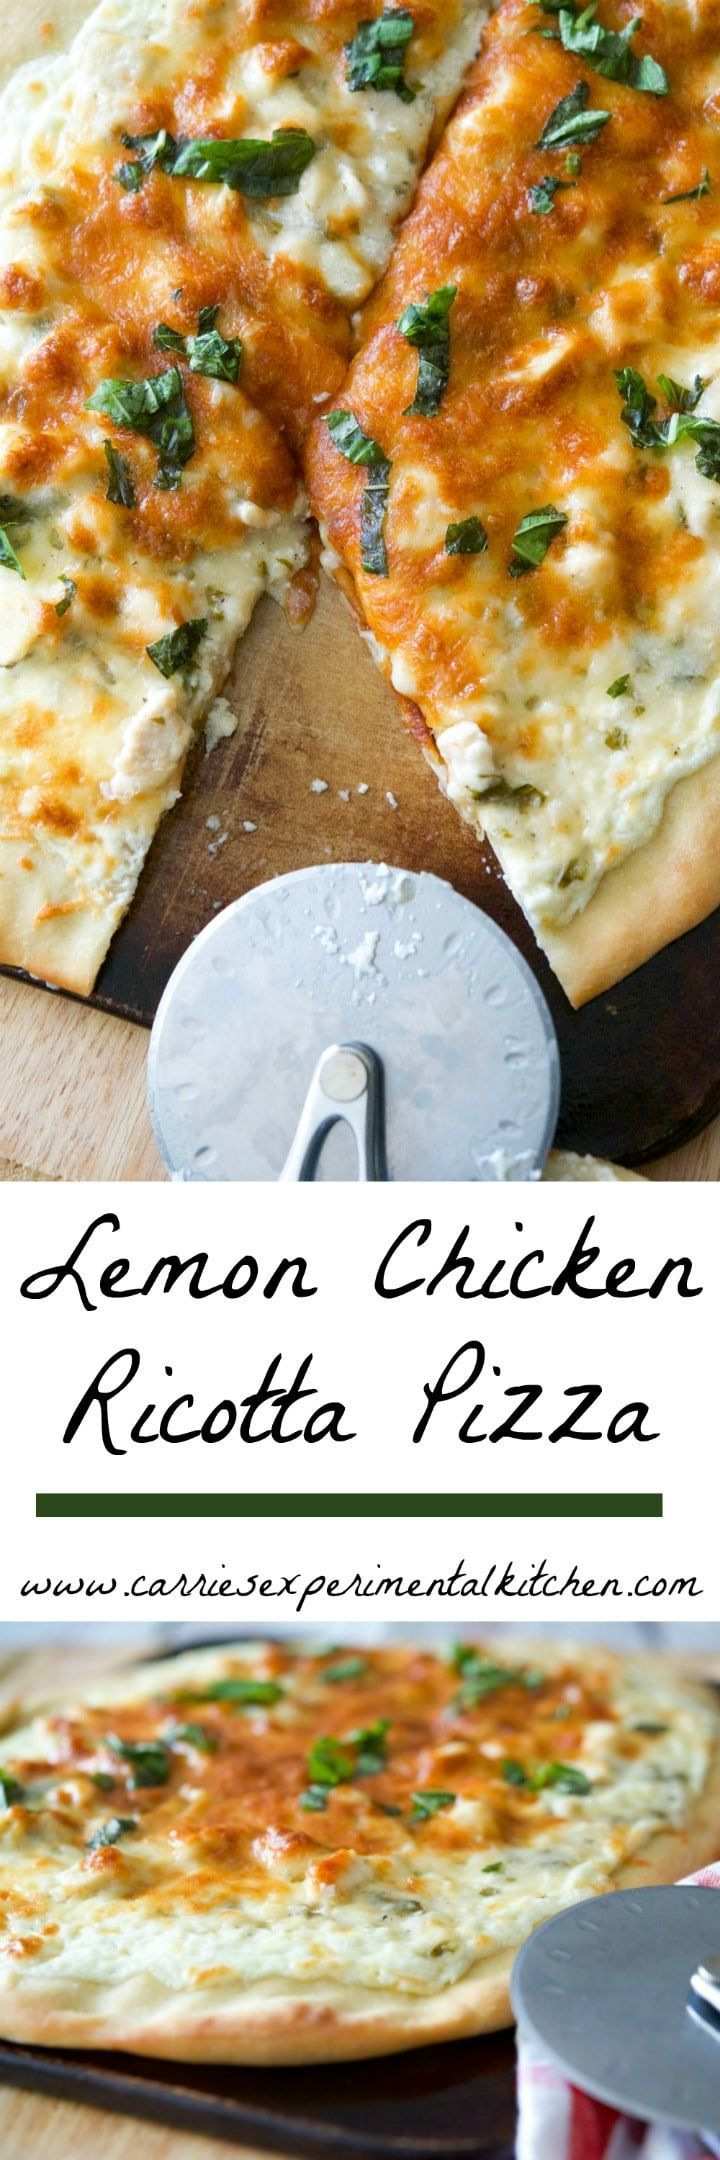 Lemon Chicken Ricotta Pizza is a white pizza made with a mixture of ricotta and mozzarella cheeses; then topped with boneless chicken in a lemon basil sauce.